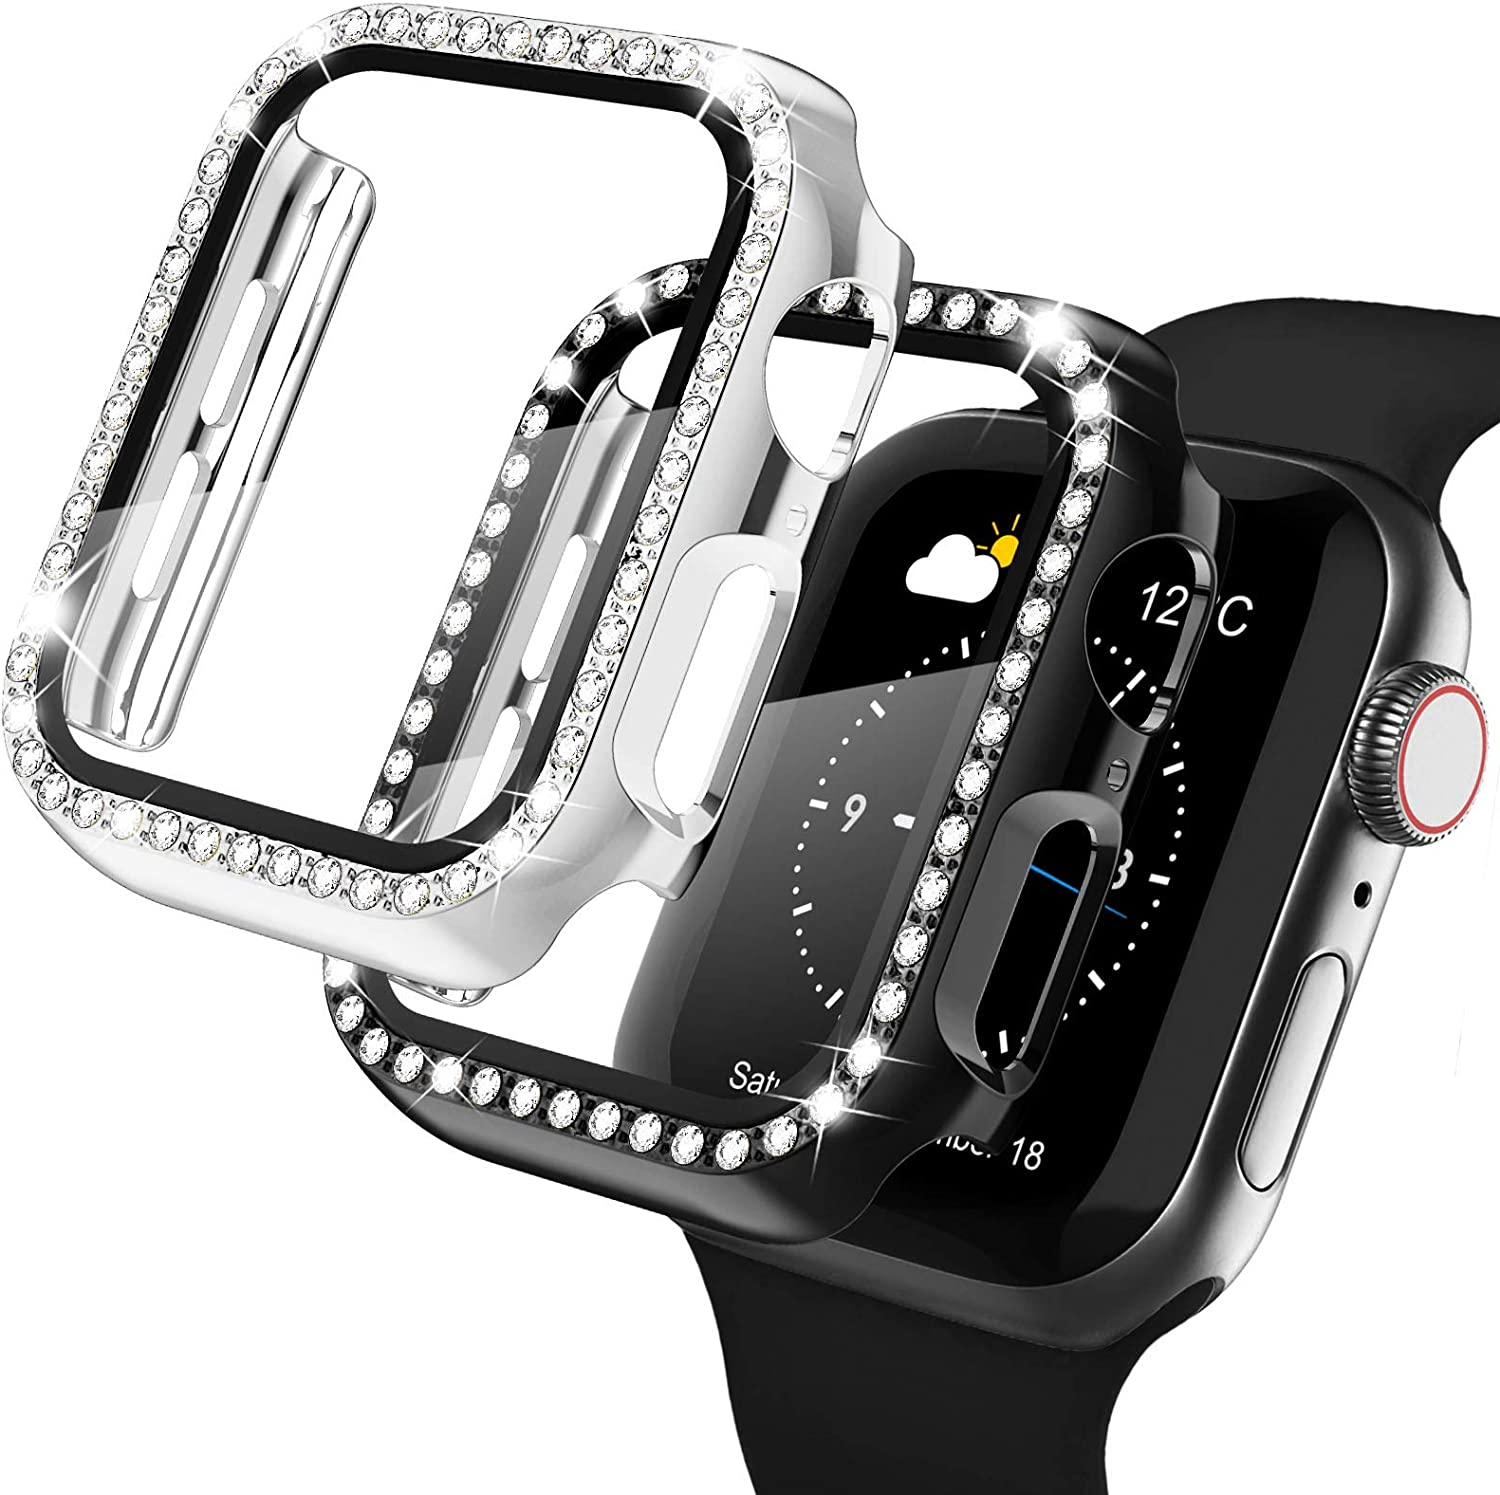 Recoppa Apple Watch Case with Screen Protector for Apple Watch 38mm Series 3/2/1, 2 Pack Bling Crystal Diamond Ultra-Thin Bumper Full Cover Protective Case for Women Girls iWatch Black/Silver